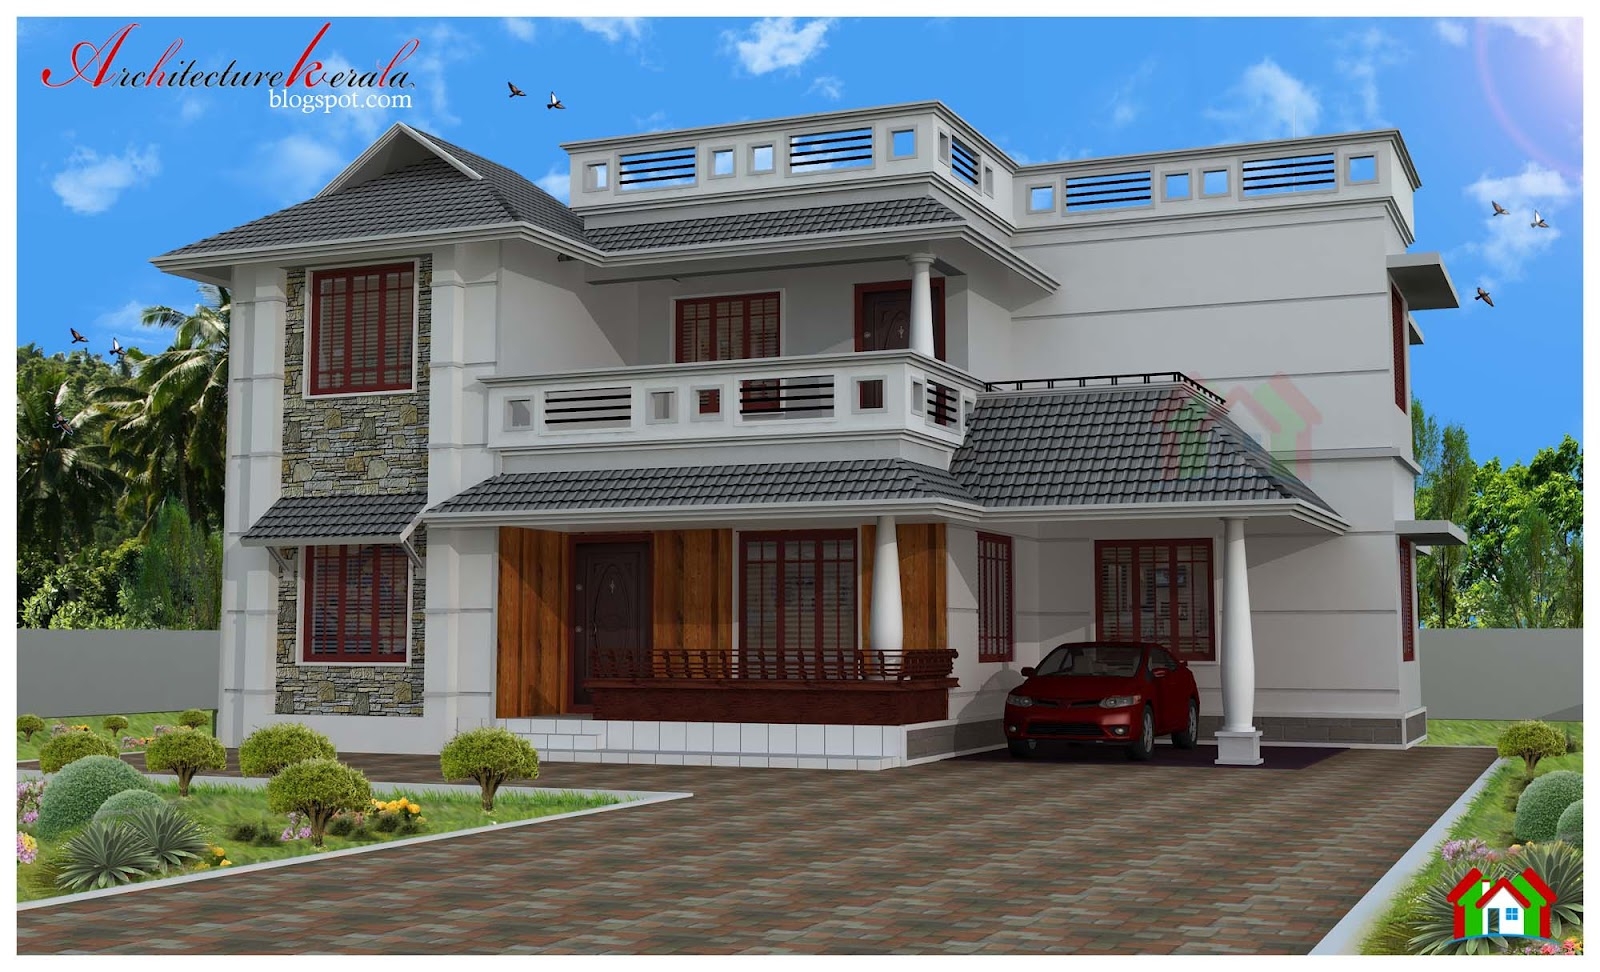 Architecture kerala four bed room house plan for Home palns